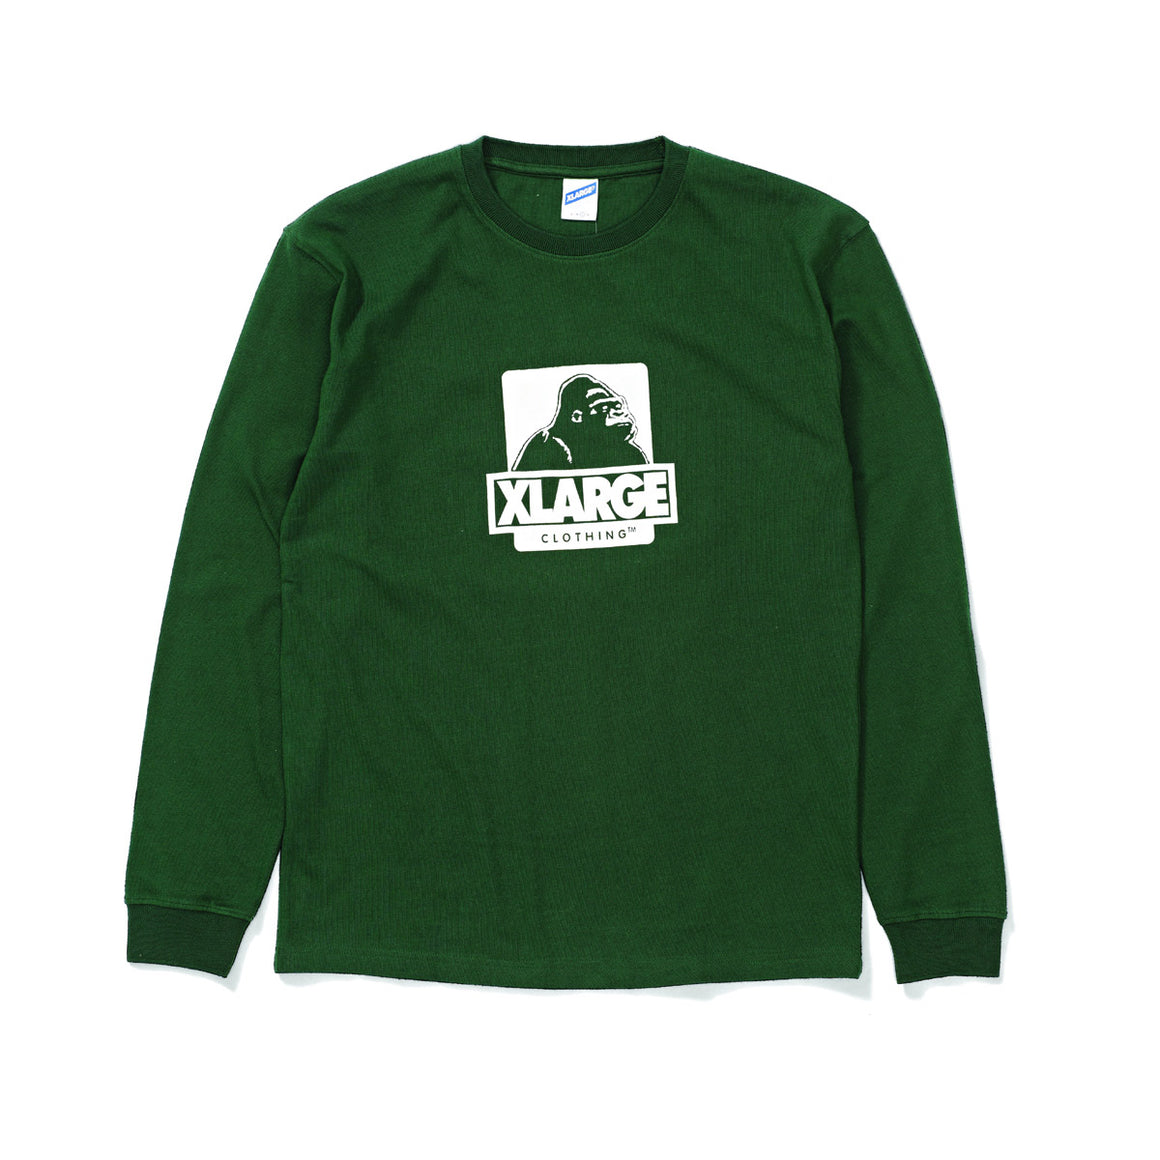 Classic OG LS Tee, Apparel  - XLarge Brand